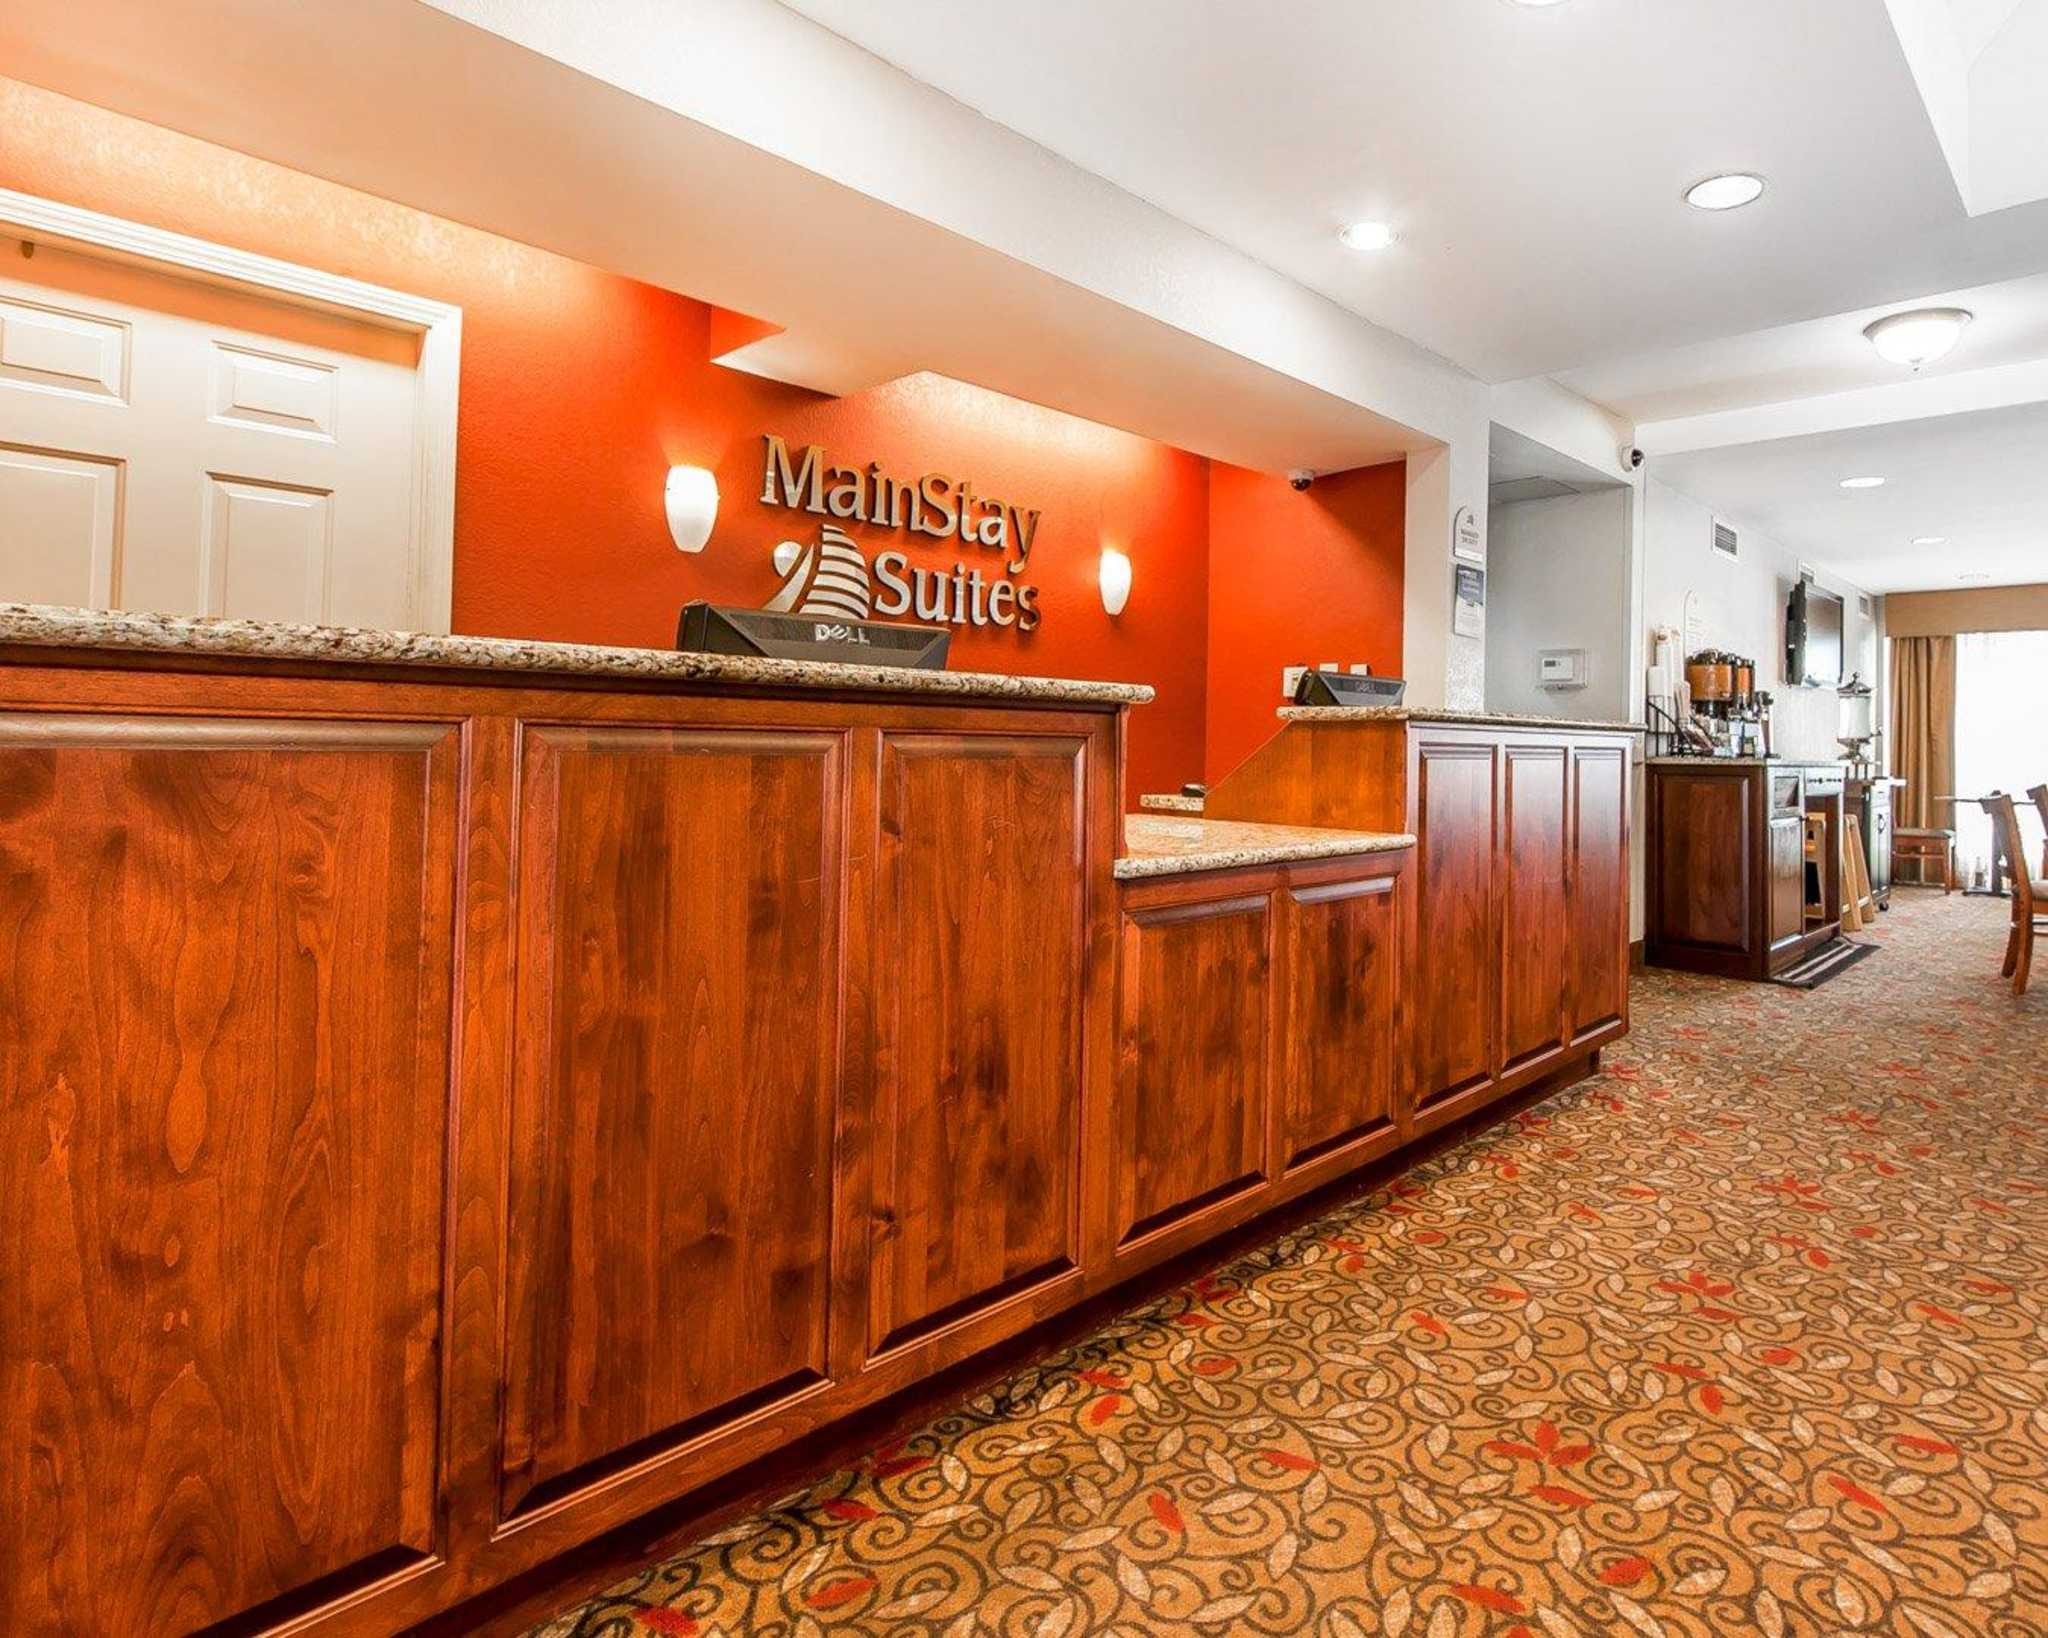 MainStay Suites Knoxville Airport image 7